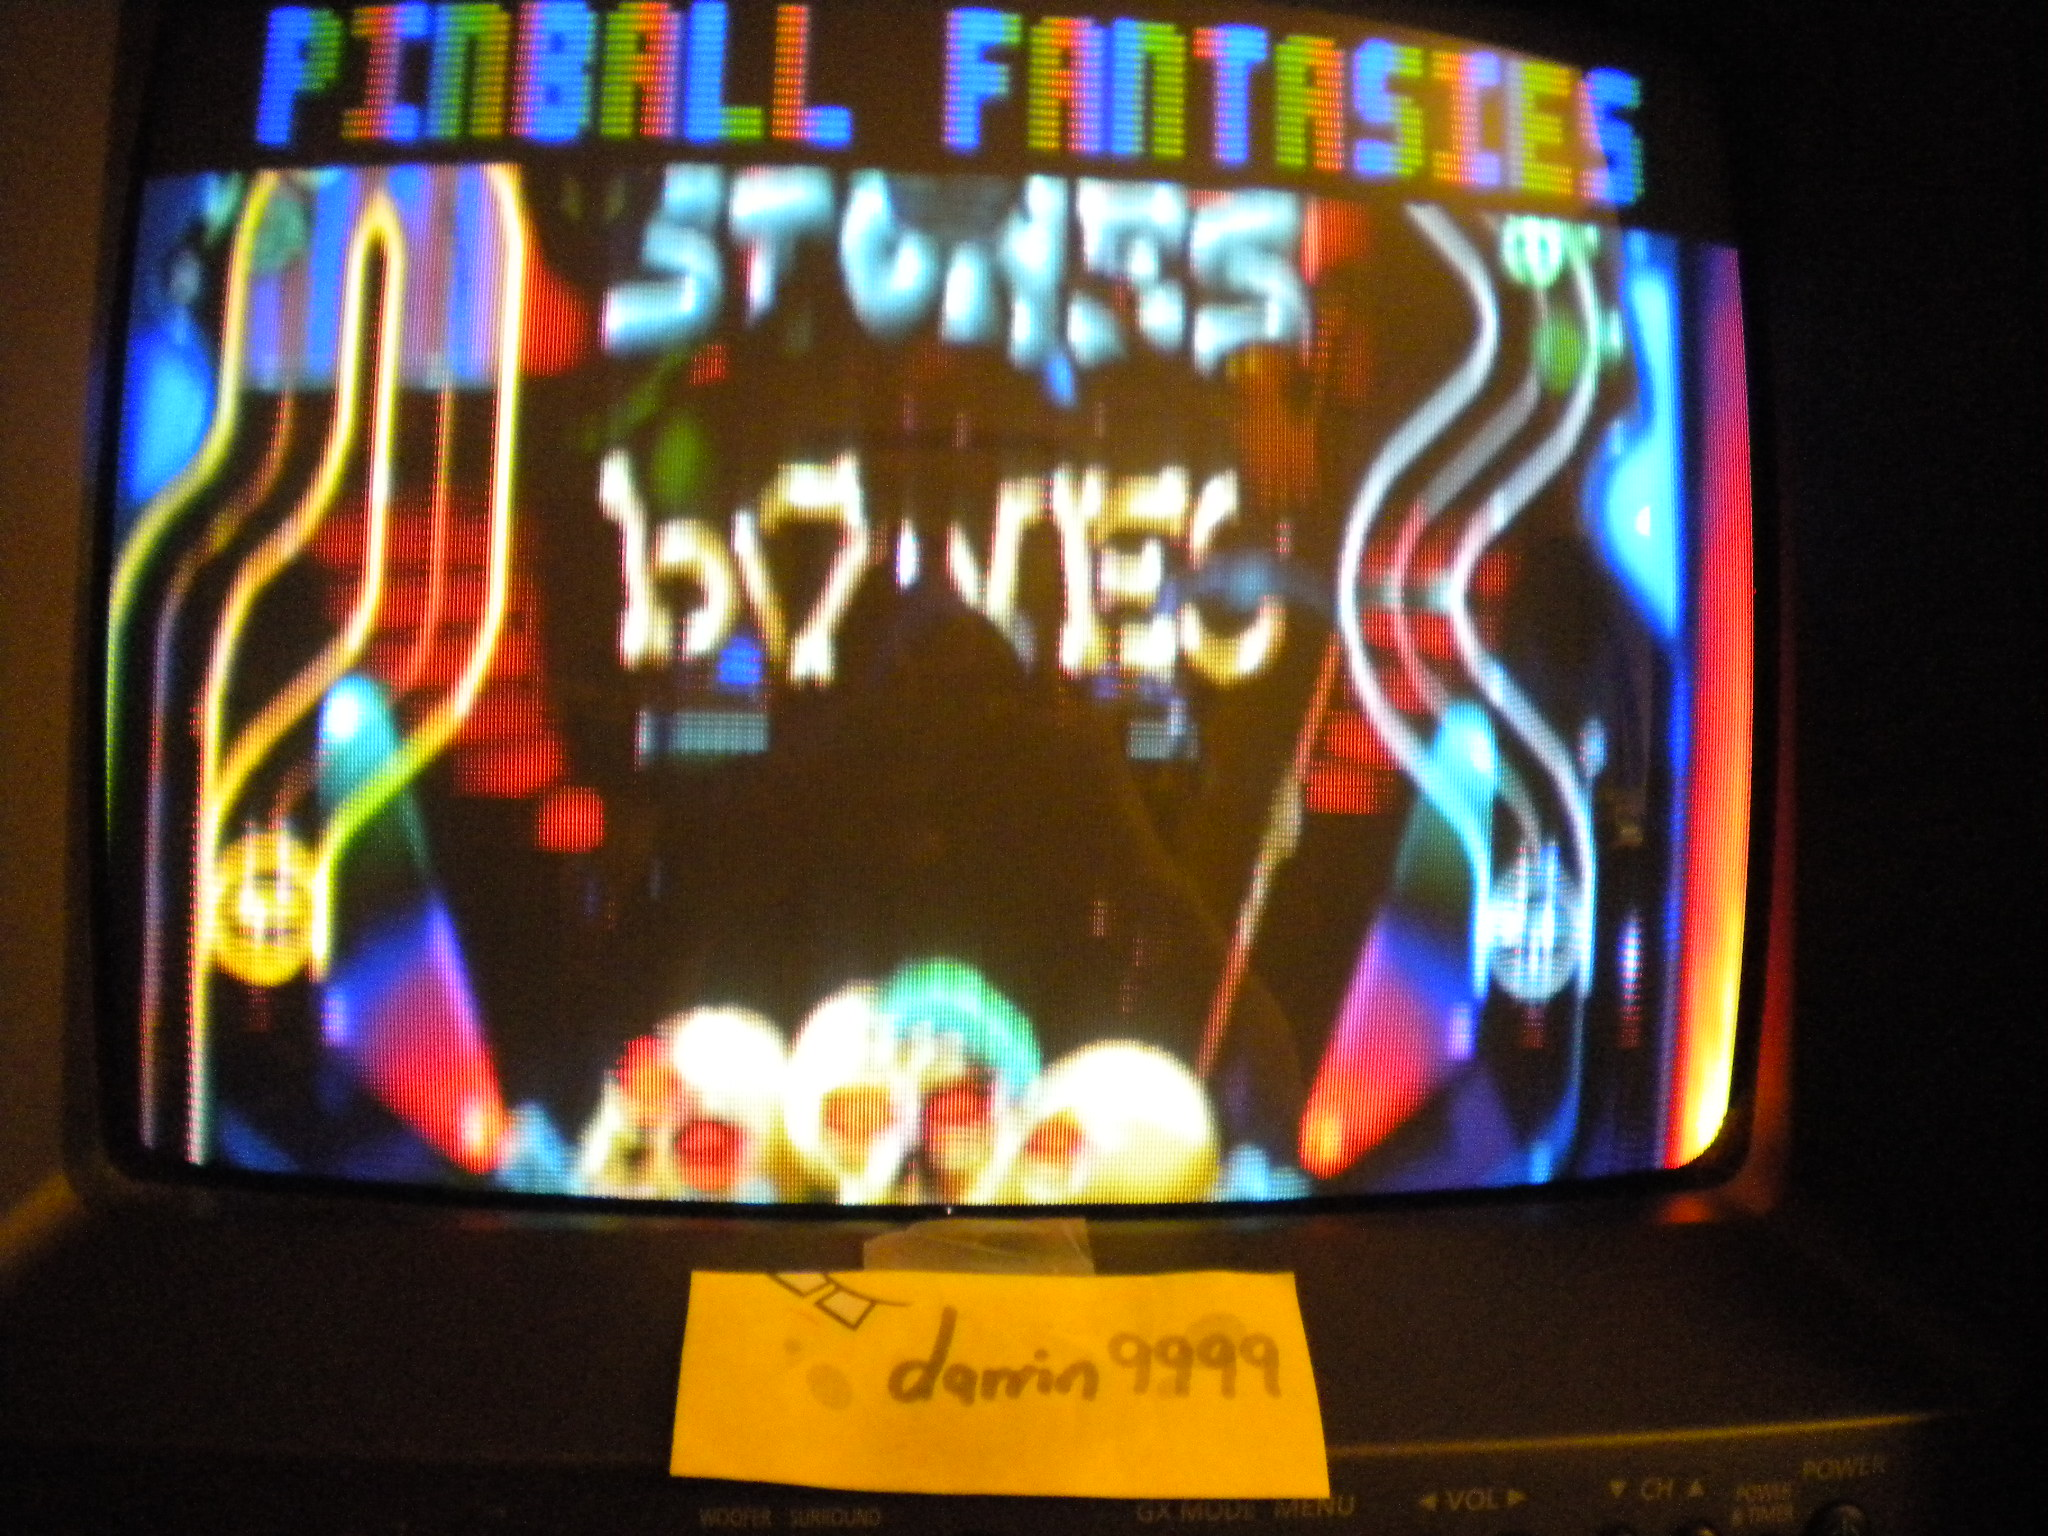 darrin9999: Pinball Fantasies: Stones N Bones (Atari Jaguar) 30,451,260 points on 2016-11-26 17:16:03